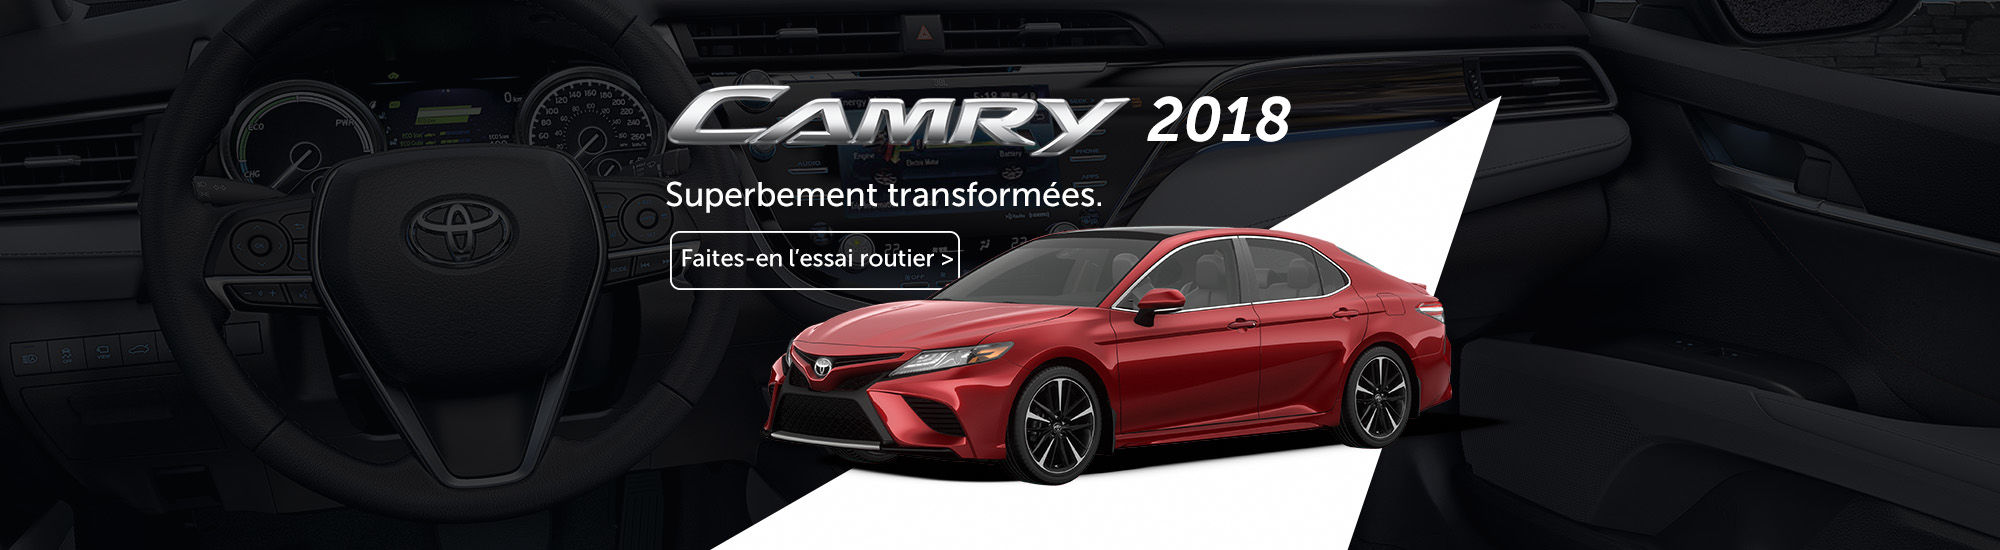 Camry 2018 superbement transformée